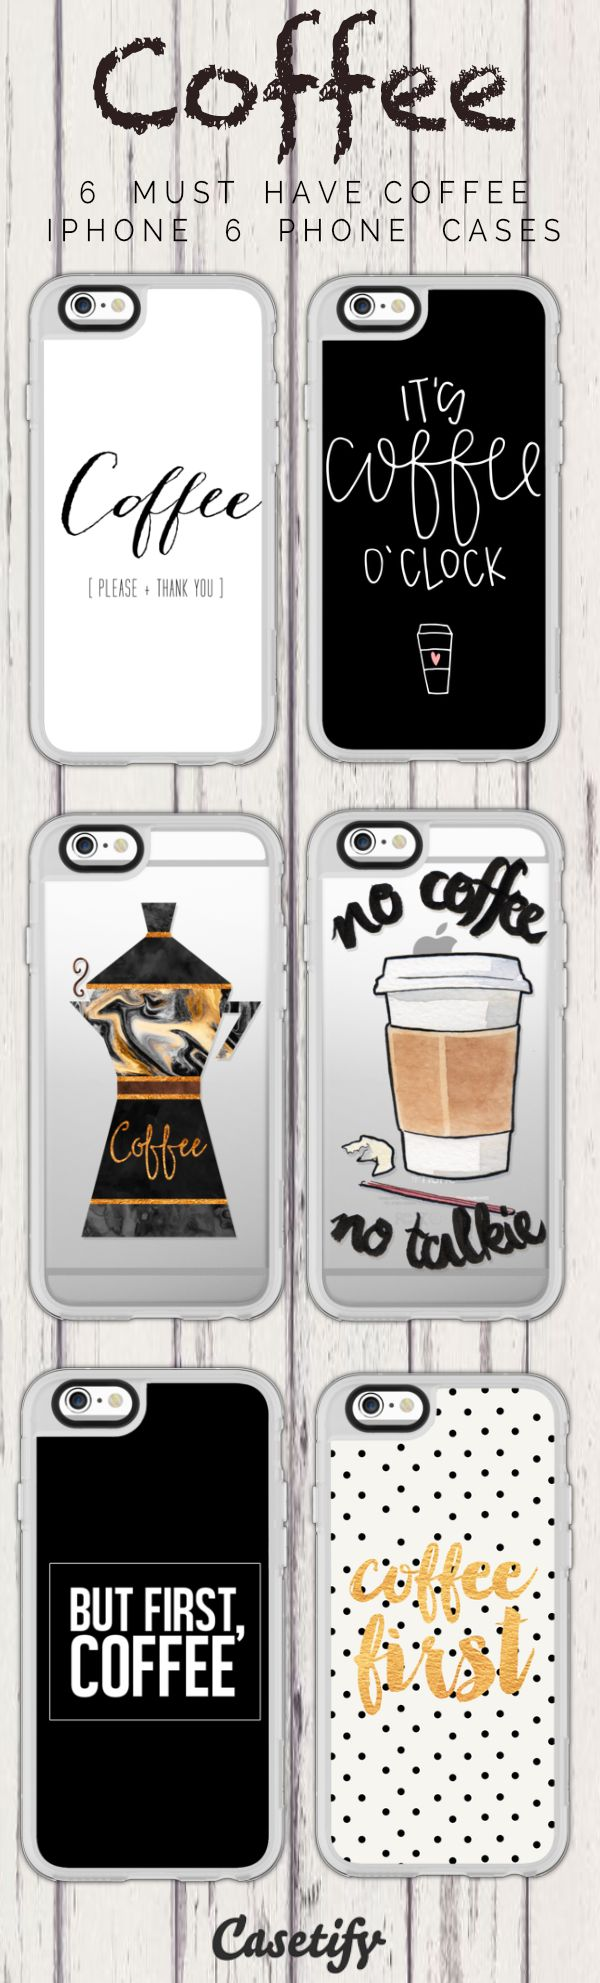 Top 6 Coffee iPhone 6 protective phone case designs   Click through to see more iPhone phone case designs >>> https://www.casetify.com/artworks/rwHrO7wUPq #coffee   @casetify